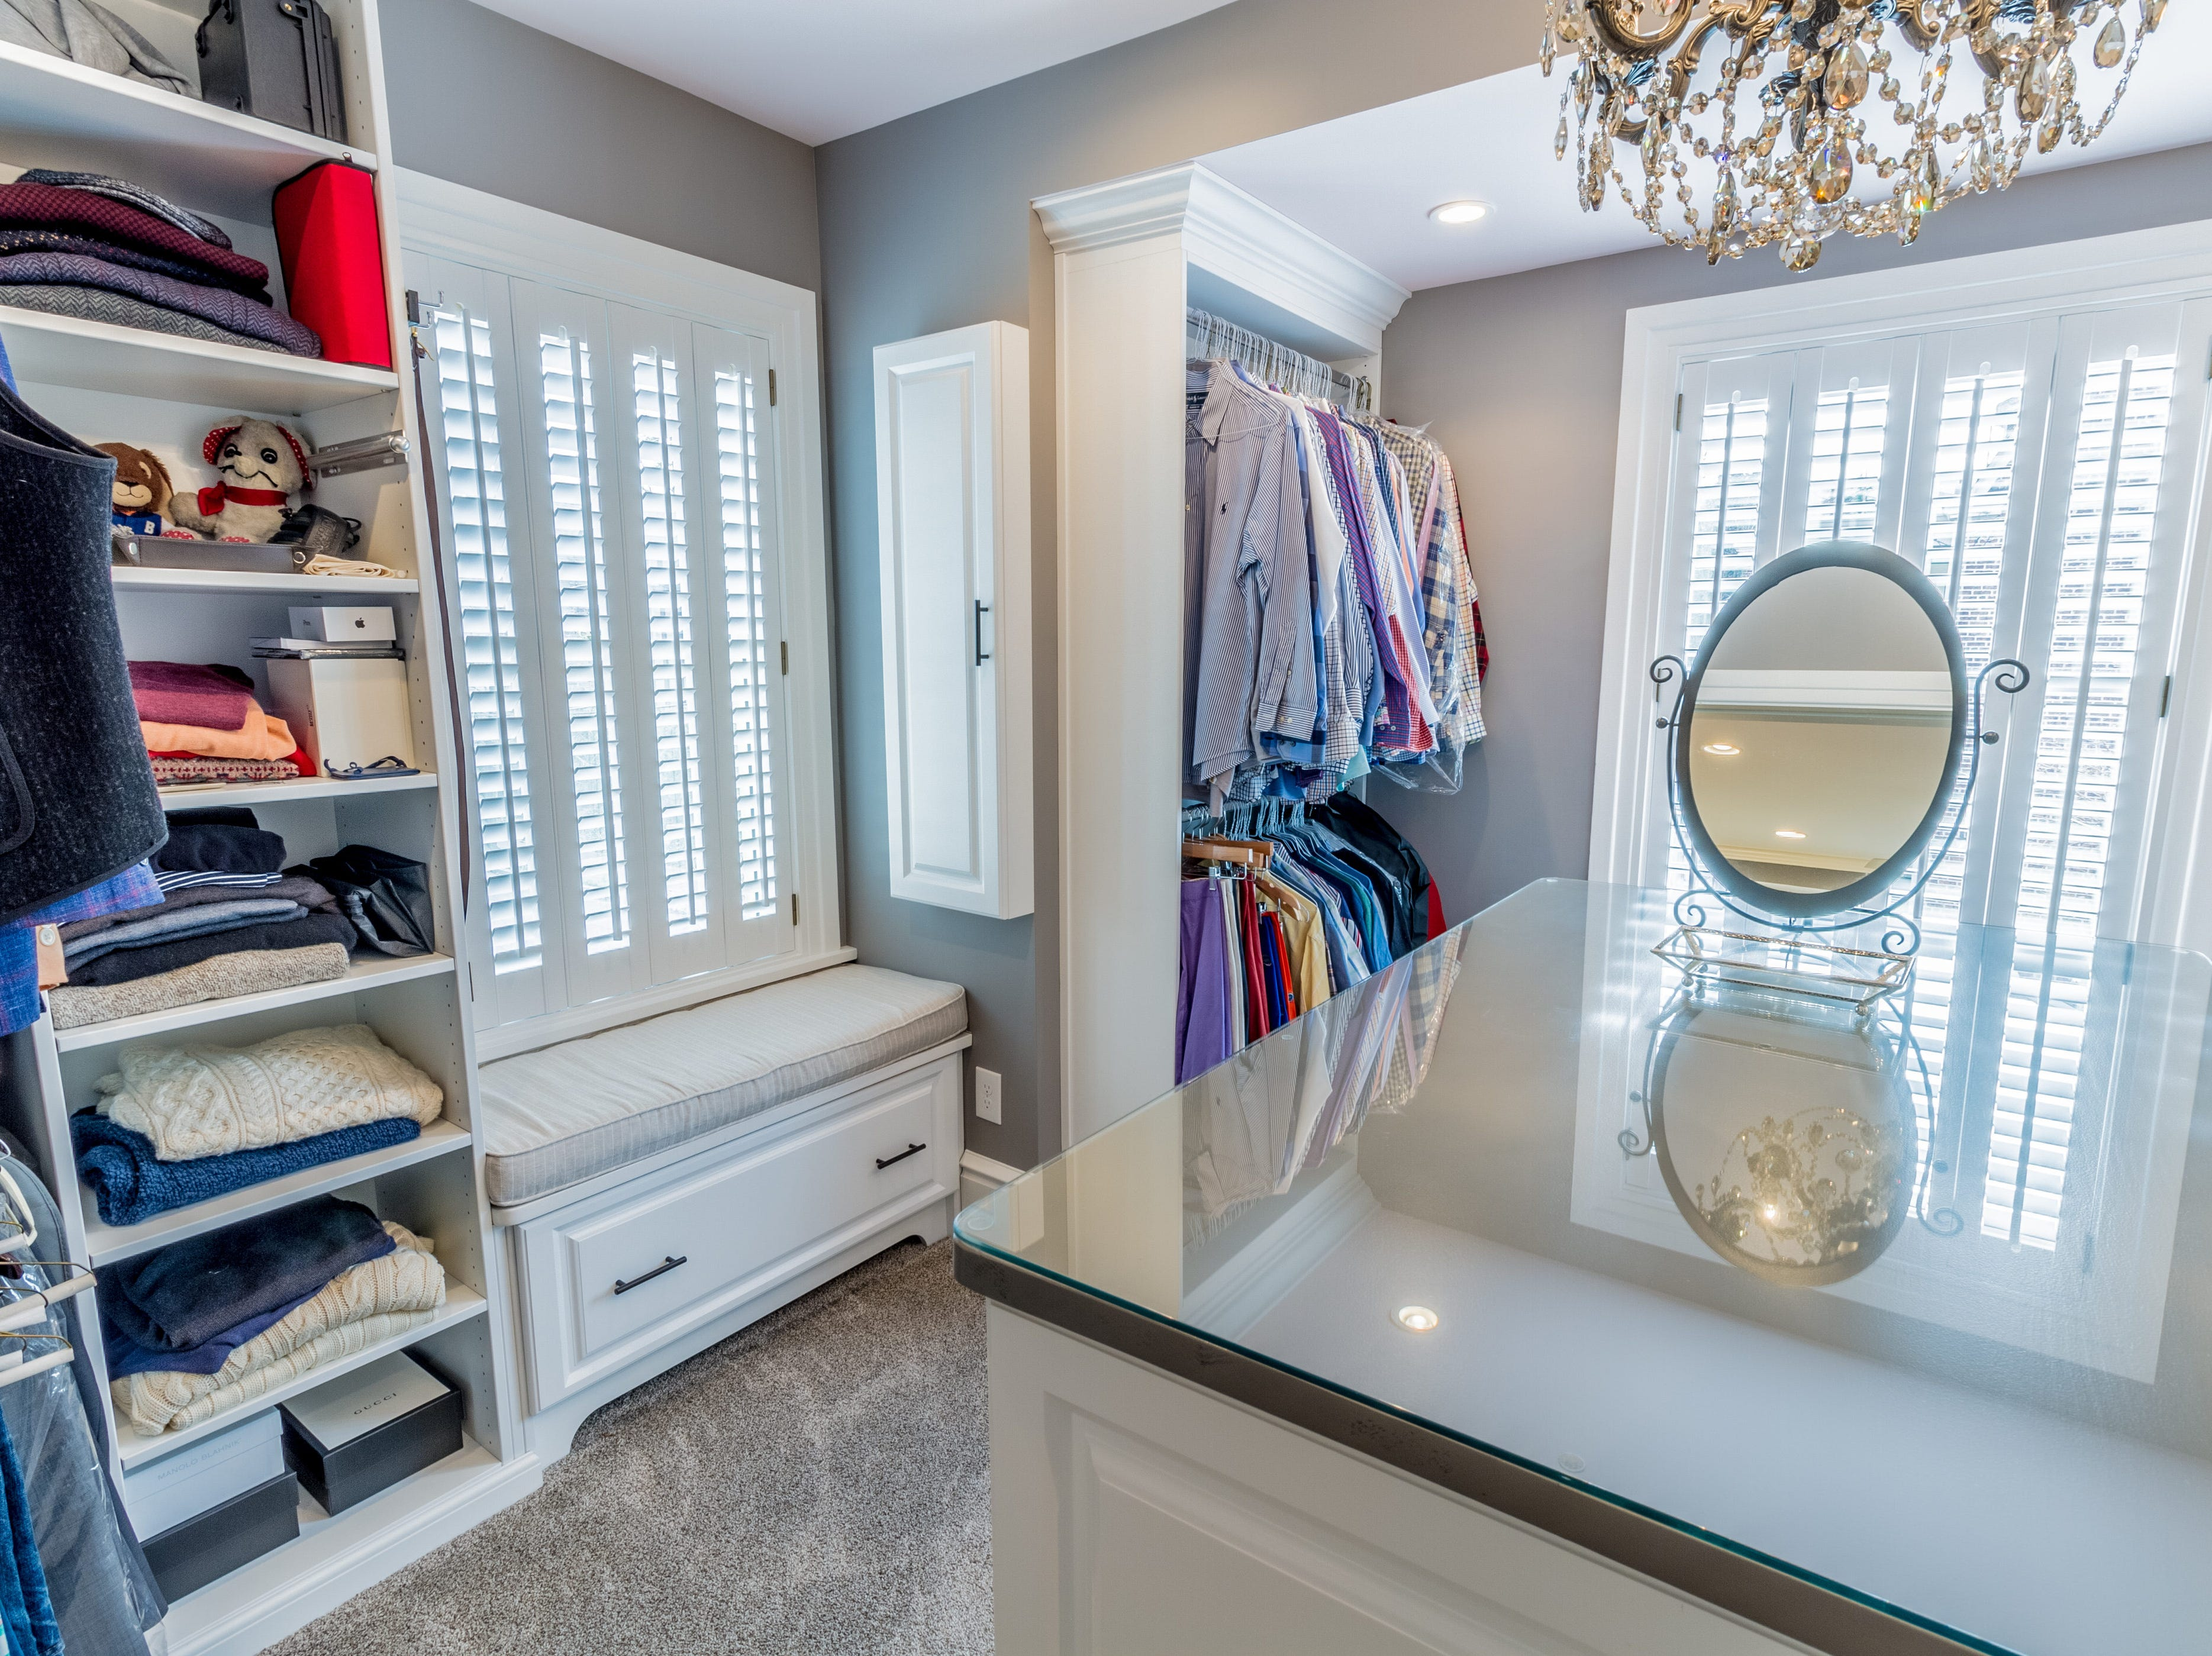 The master suite in the house at 11 N. Rodney St. includes a room-size walk-in closet.